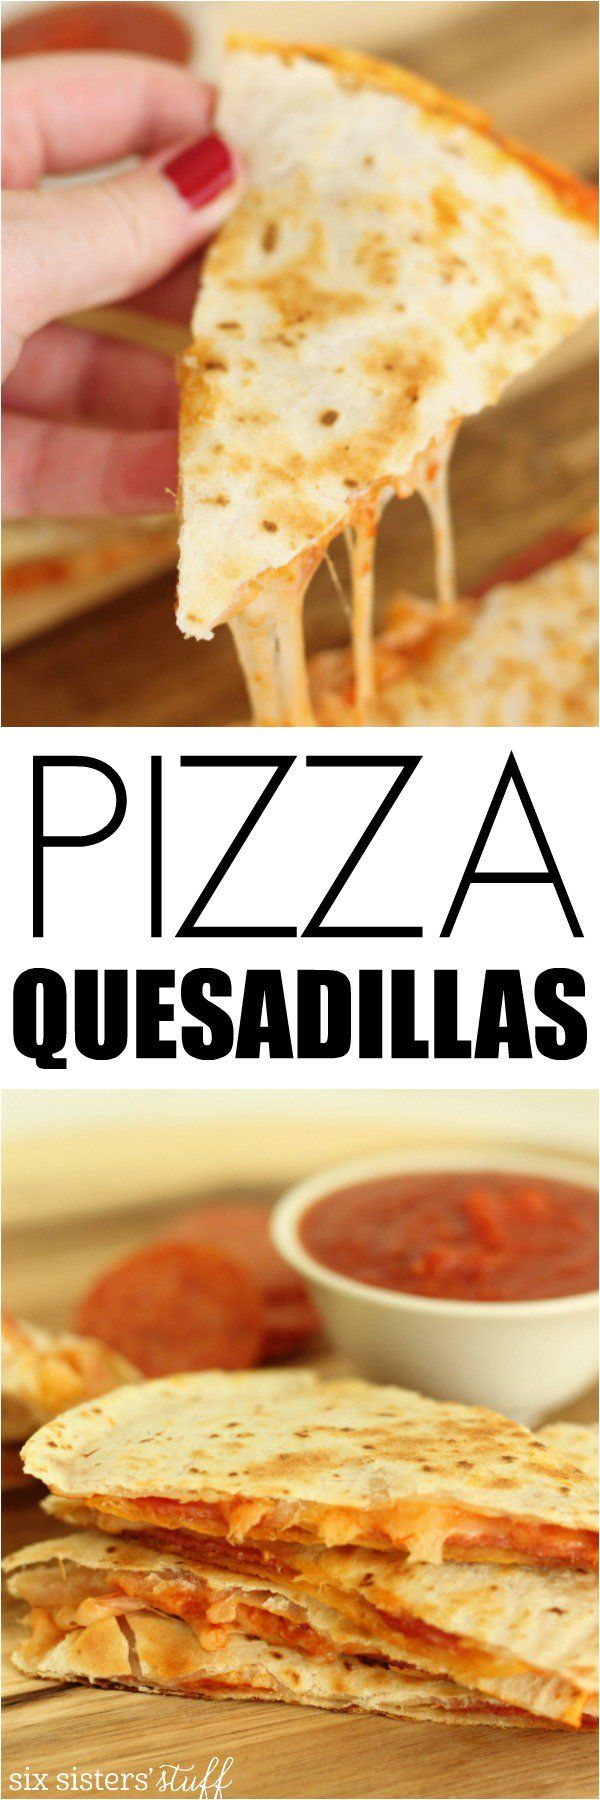 Easy Pizza Quesadillas is part of Easy pizza - All the deliciousness of homemade pepperoni pizza, ready in a fraction of the time  With pepperoni and sauce tucked into the gooey, cheesy insides Pepperoni Pizza Quesadillas are a kidfriendly meal everyone will love